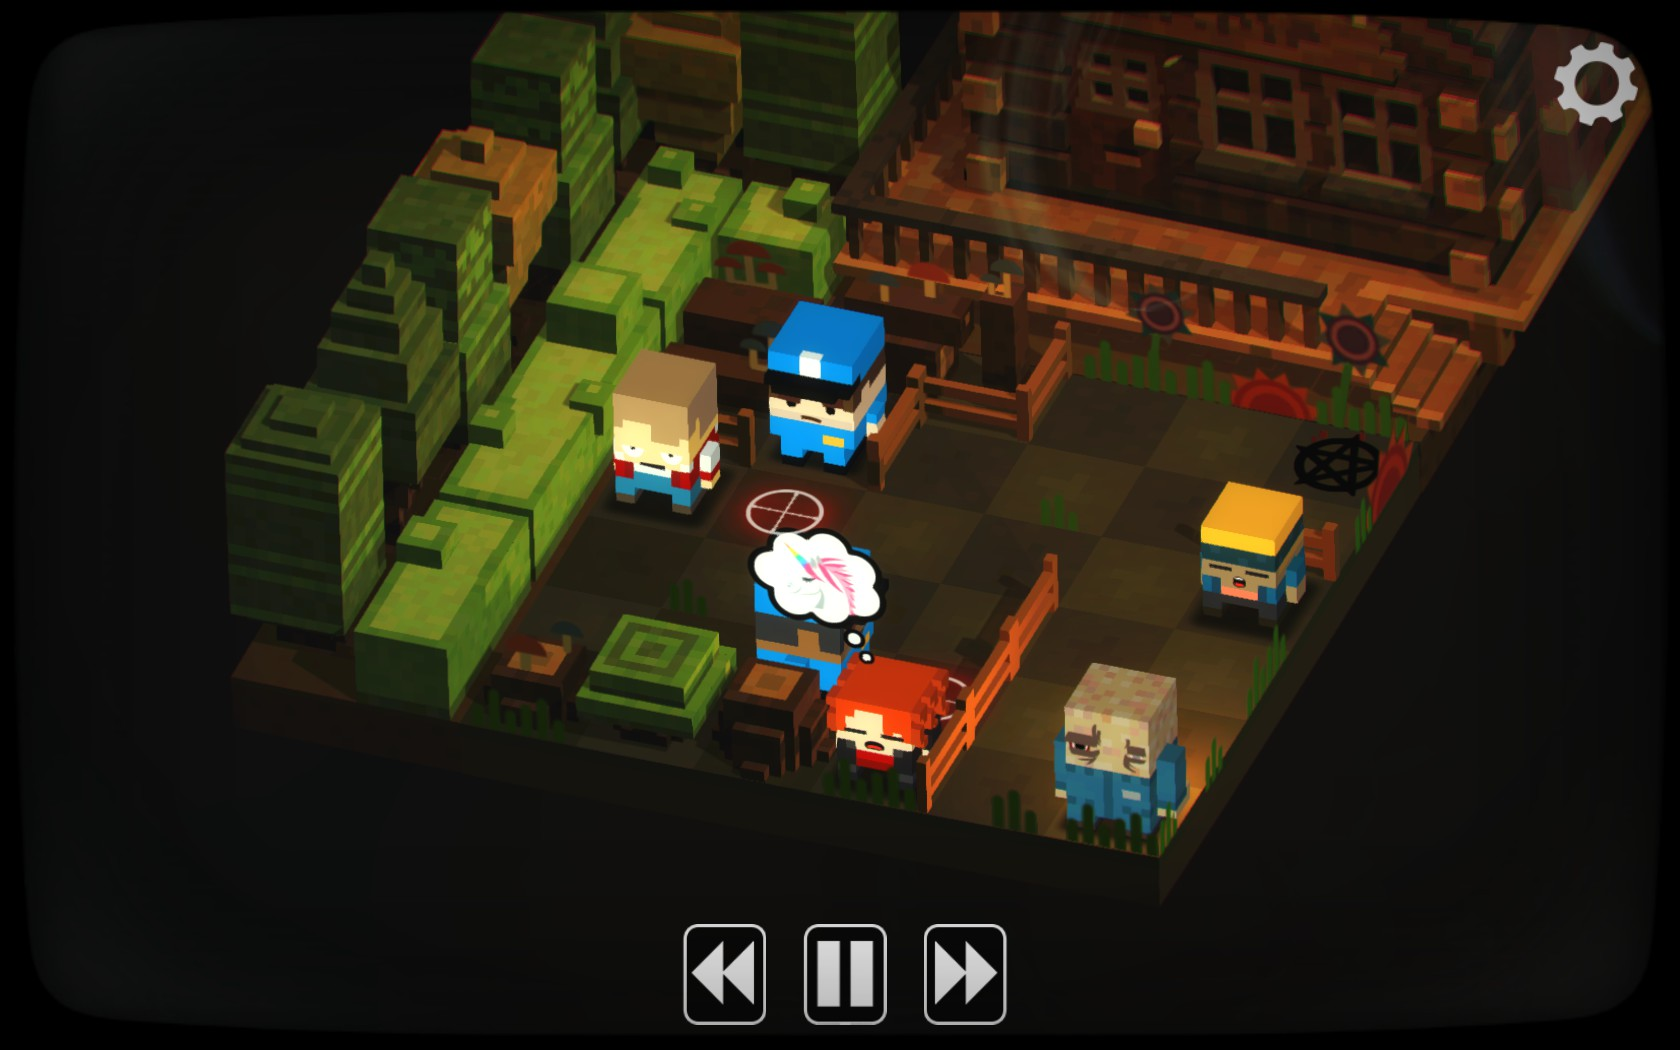 20161029155109 1 - Slayaway Camp: The Butcher's Cut (Video Game)